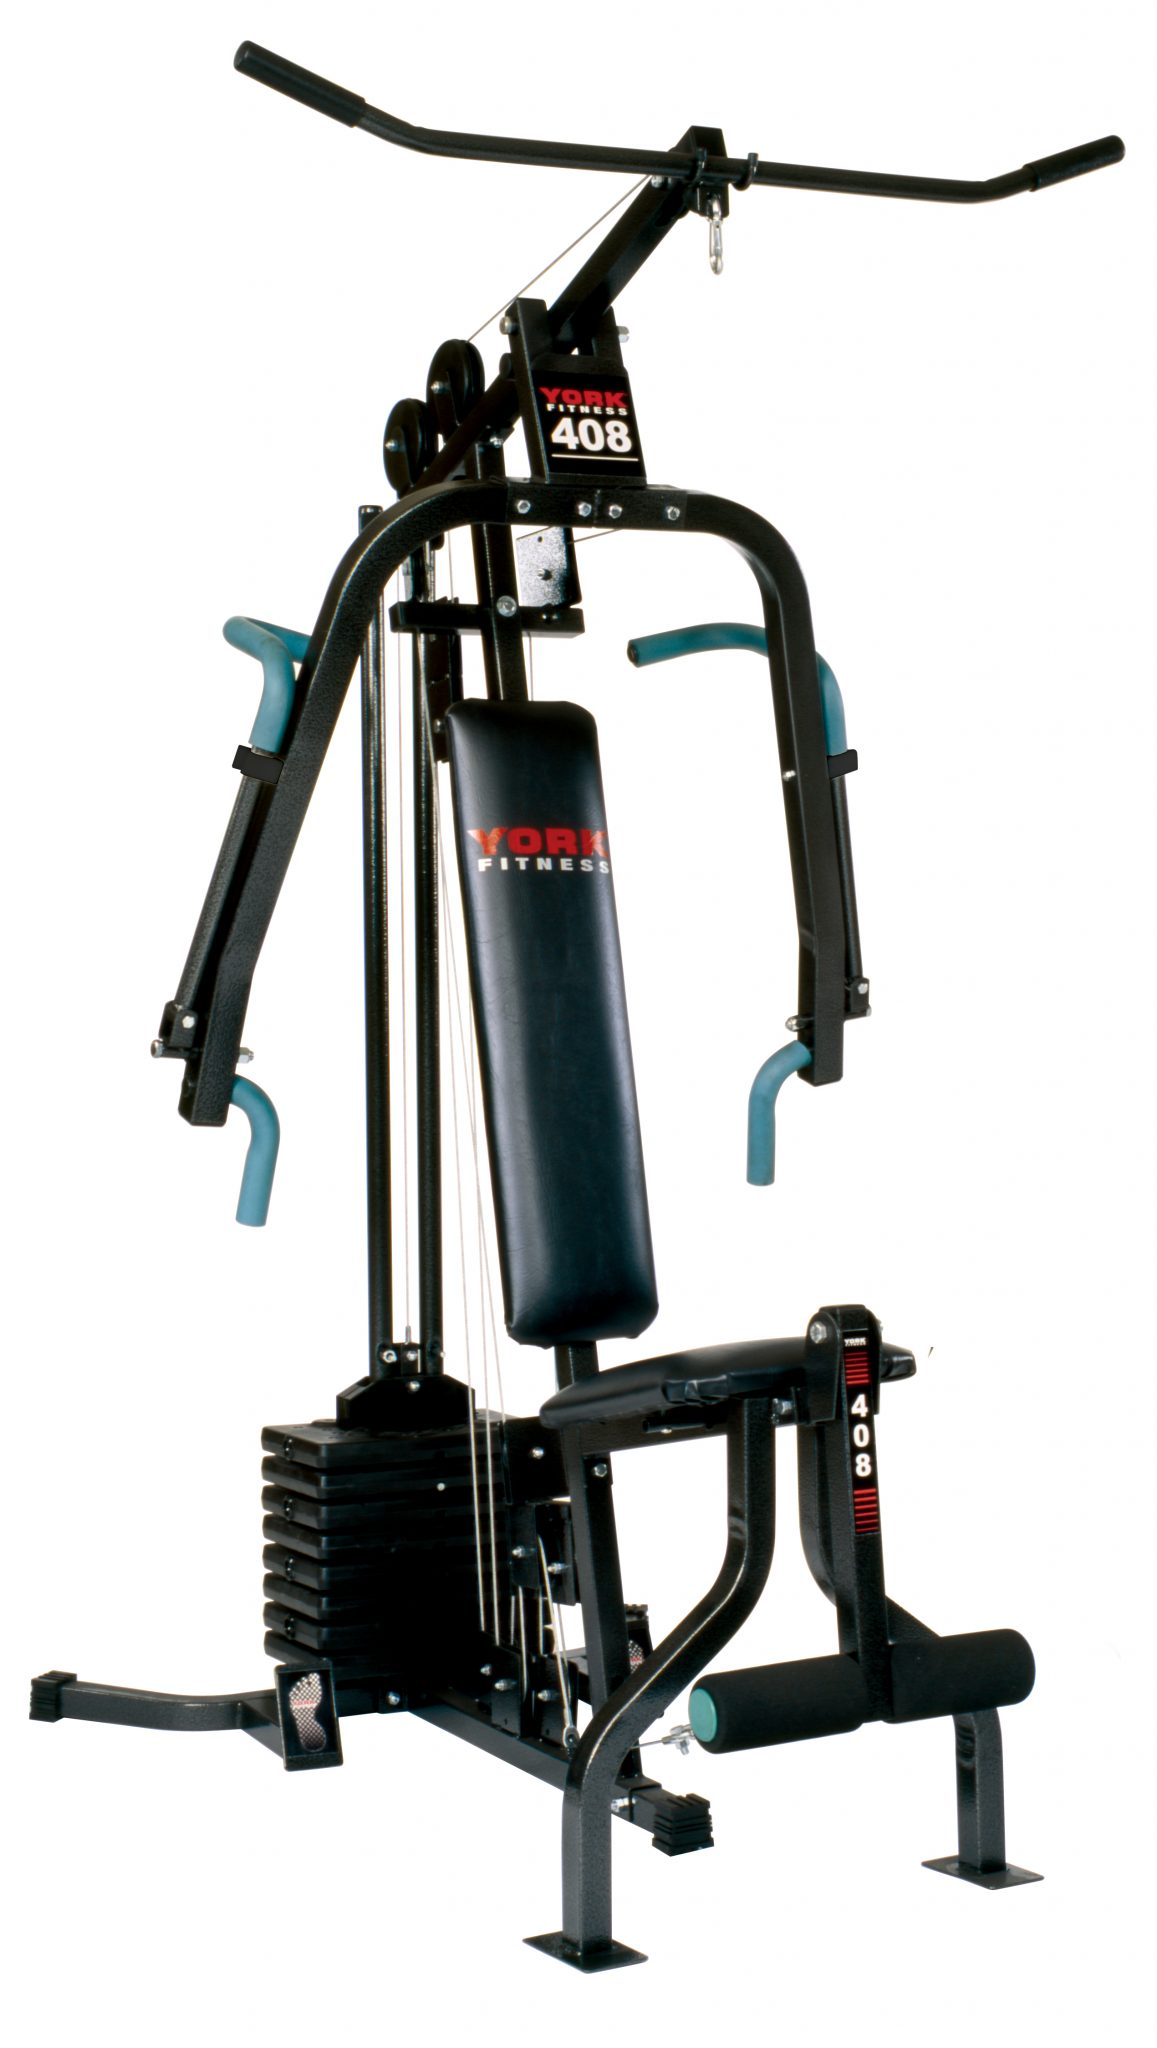 YORK 408 Home Gym | Home Gym Equipment